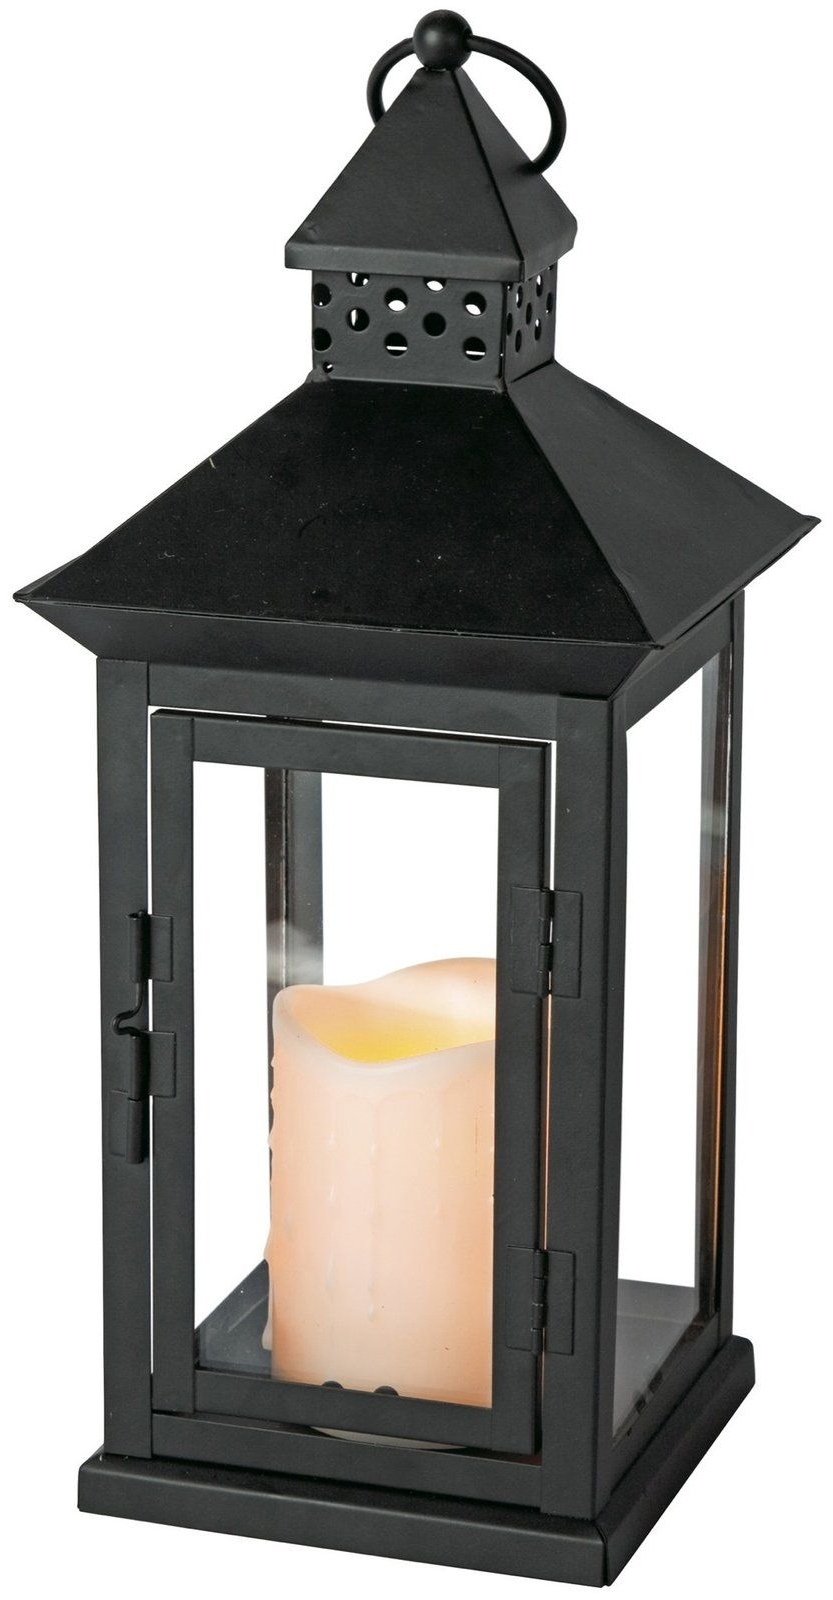 Widely Used Outdoor Timer Lanterns Inside Indoor Outdoor Flameless Candle Lantern W/ Timer, 8.5 X (View 8 of 20)